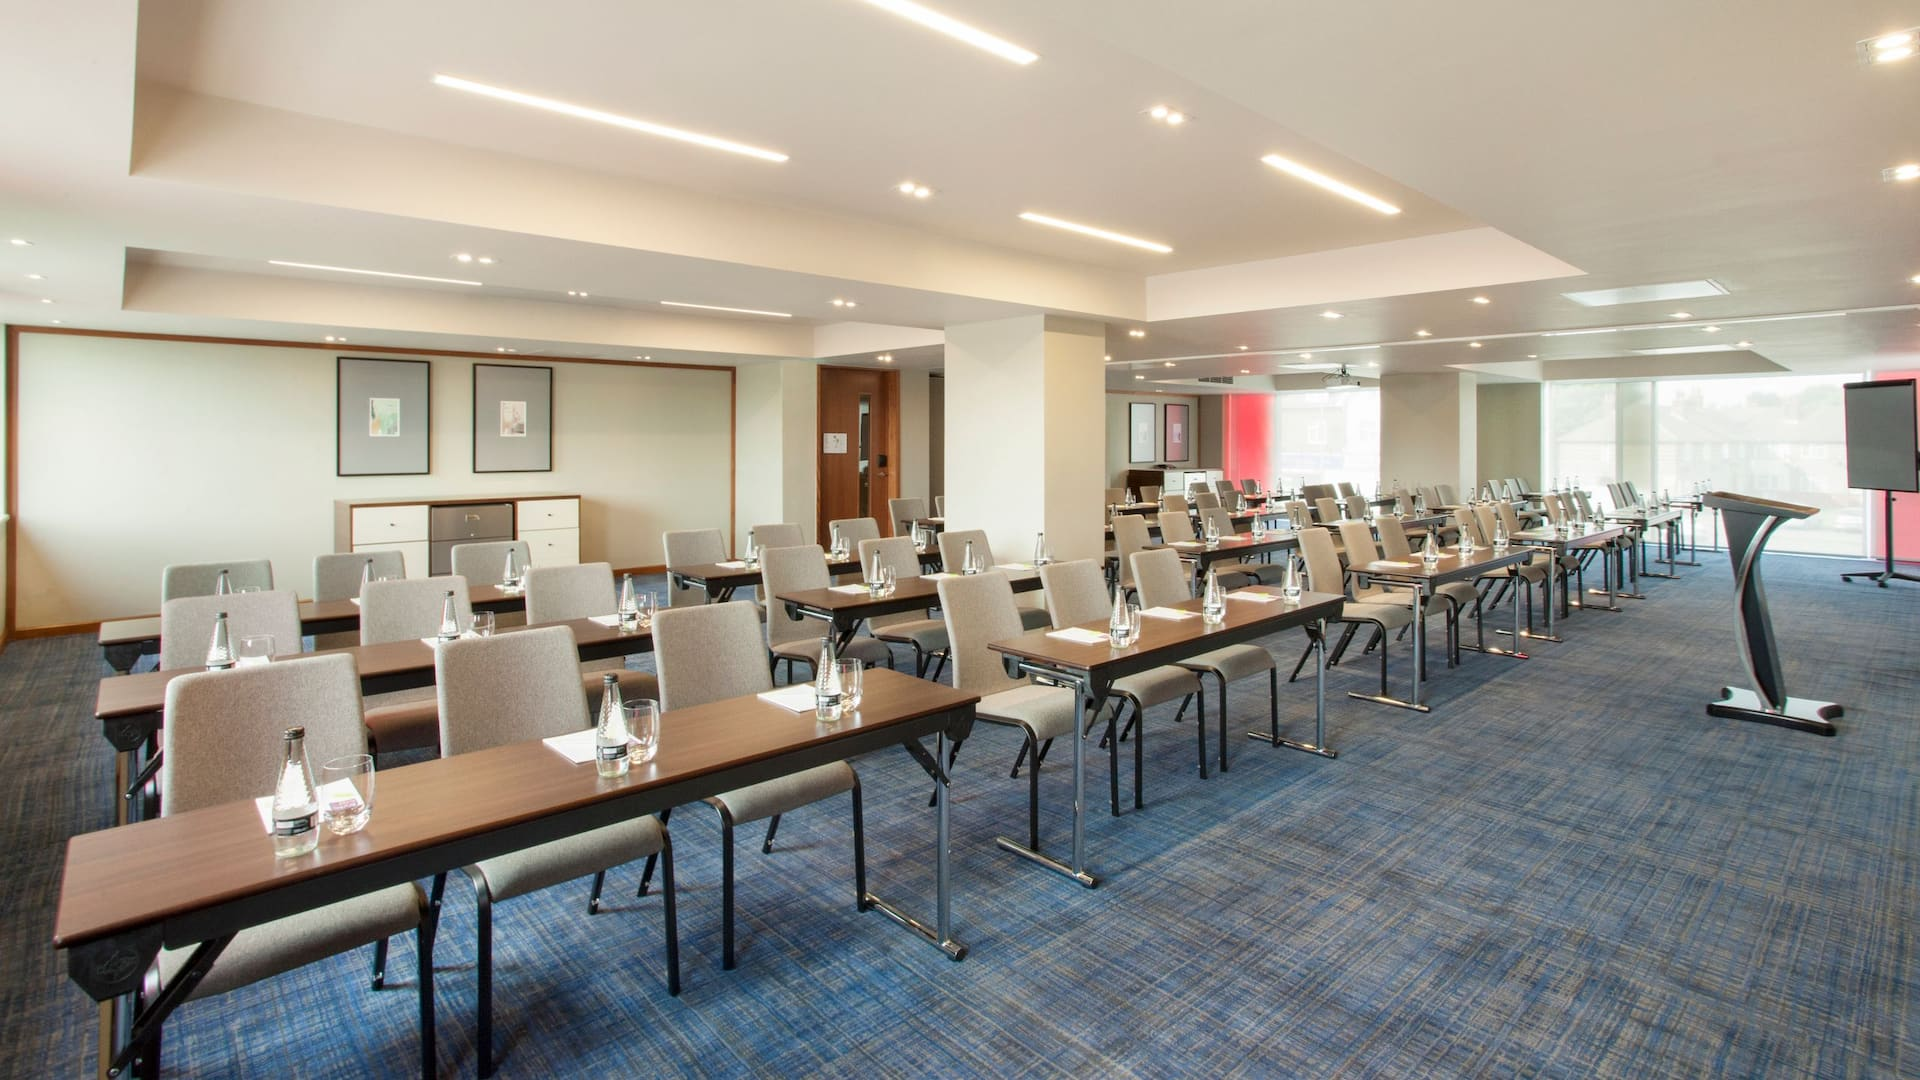 Meeting space classroom layout in Hyatt Place West London/Hayes